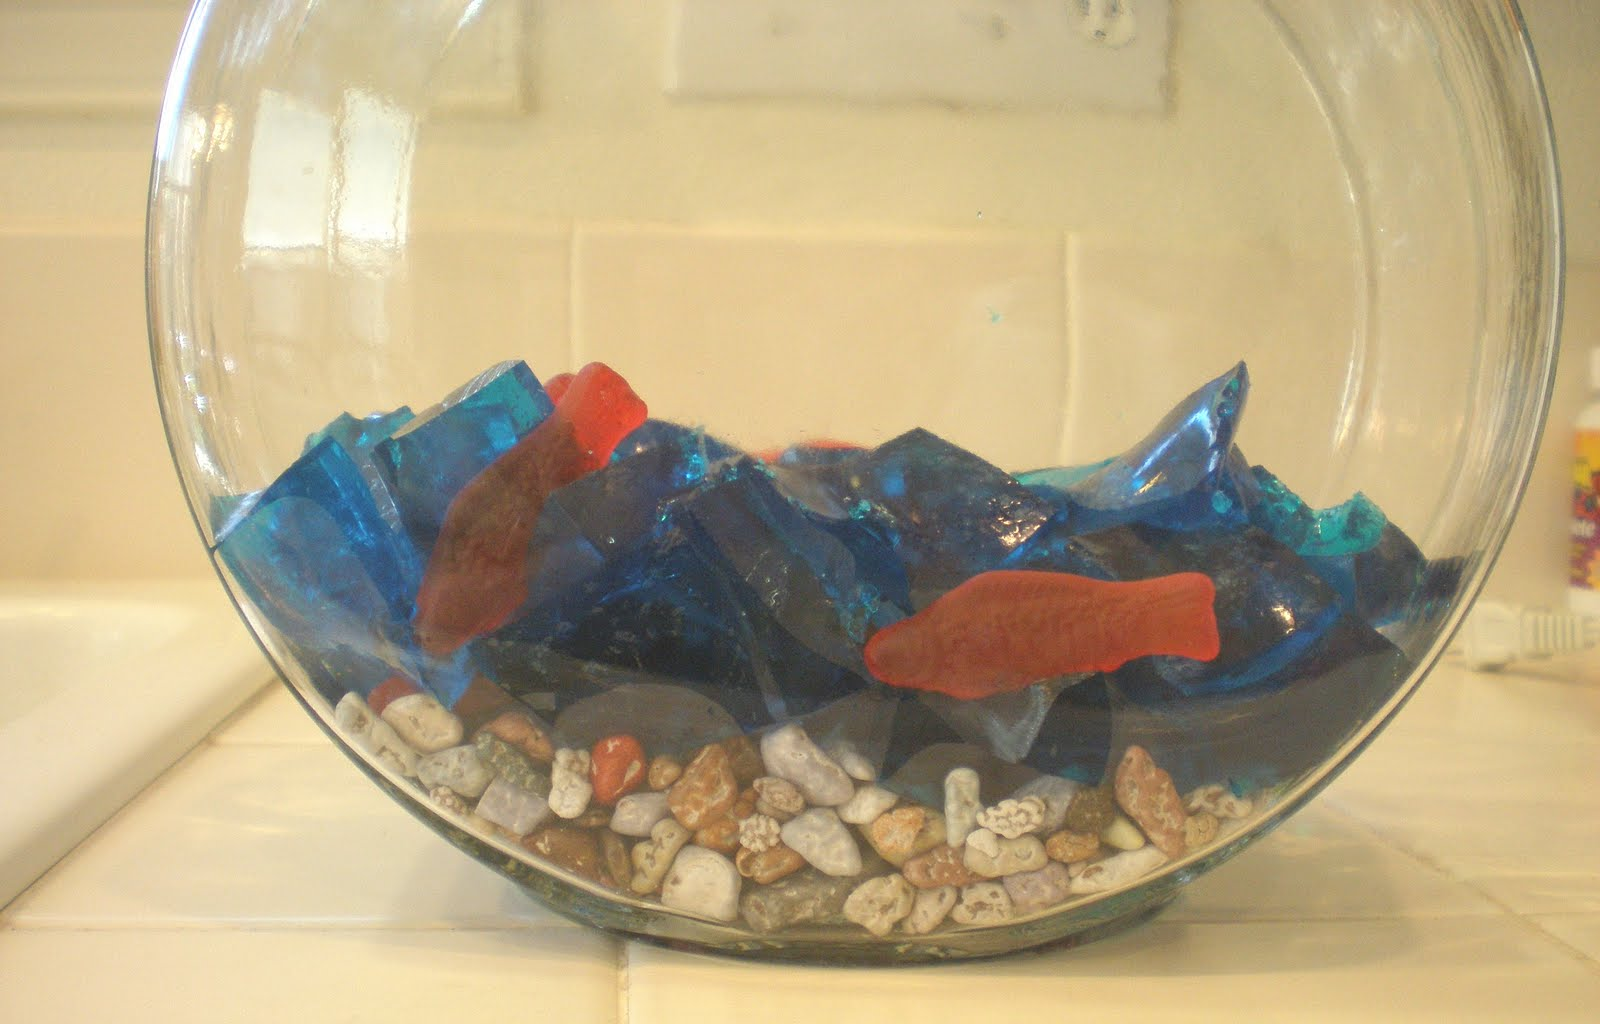 Freshwater fish bowl - I Remember Making This Years And Years Ago For A Friend S Children It Was Pretty Cool I Thought So My Kids And I Thought We Would Make It Again For Some